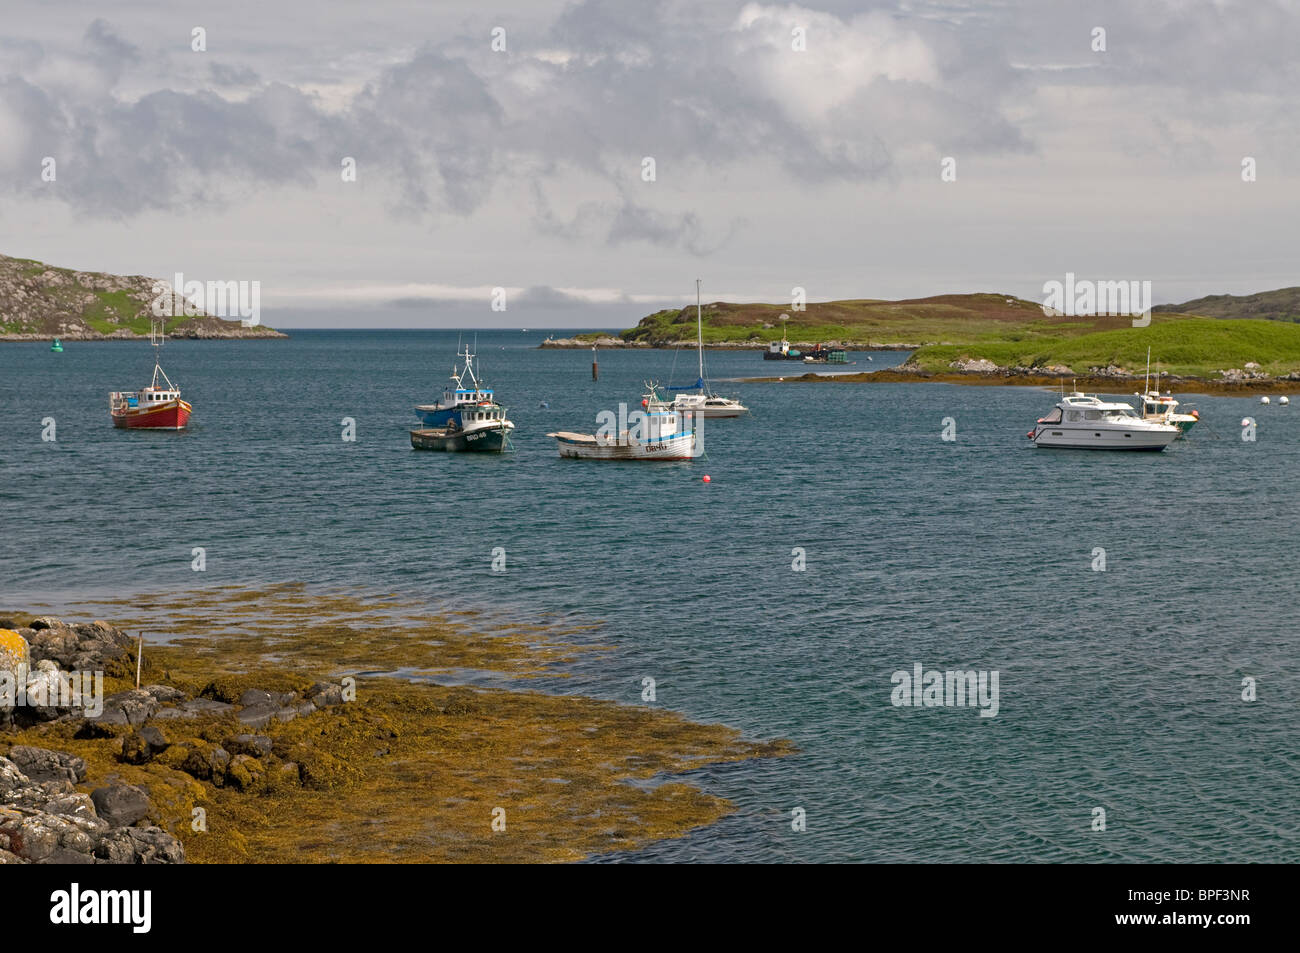 Lochboisdale small boat moorings, South Uist, Outer Hebrides, Scotland. SCO 6428 - Stock Image